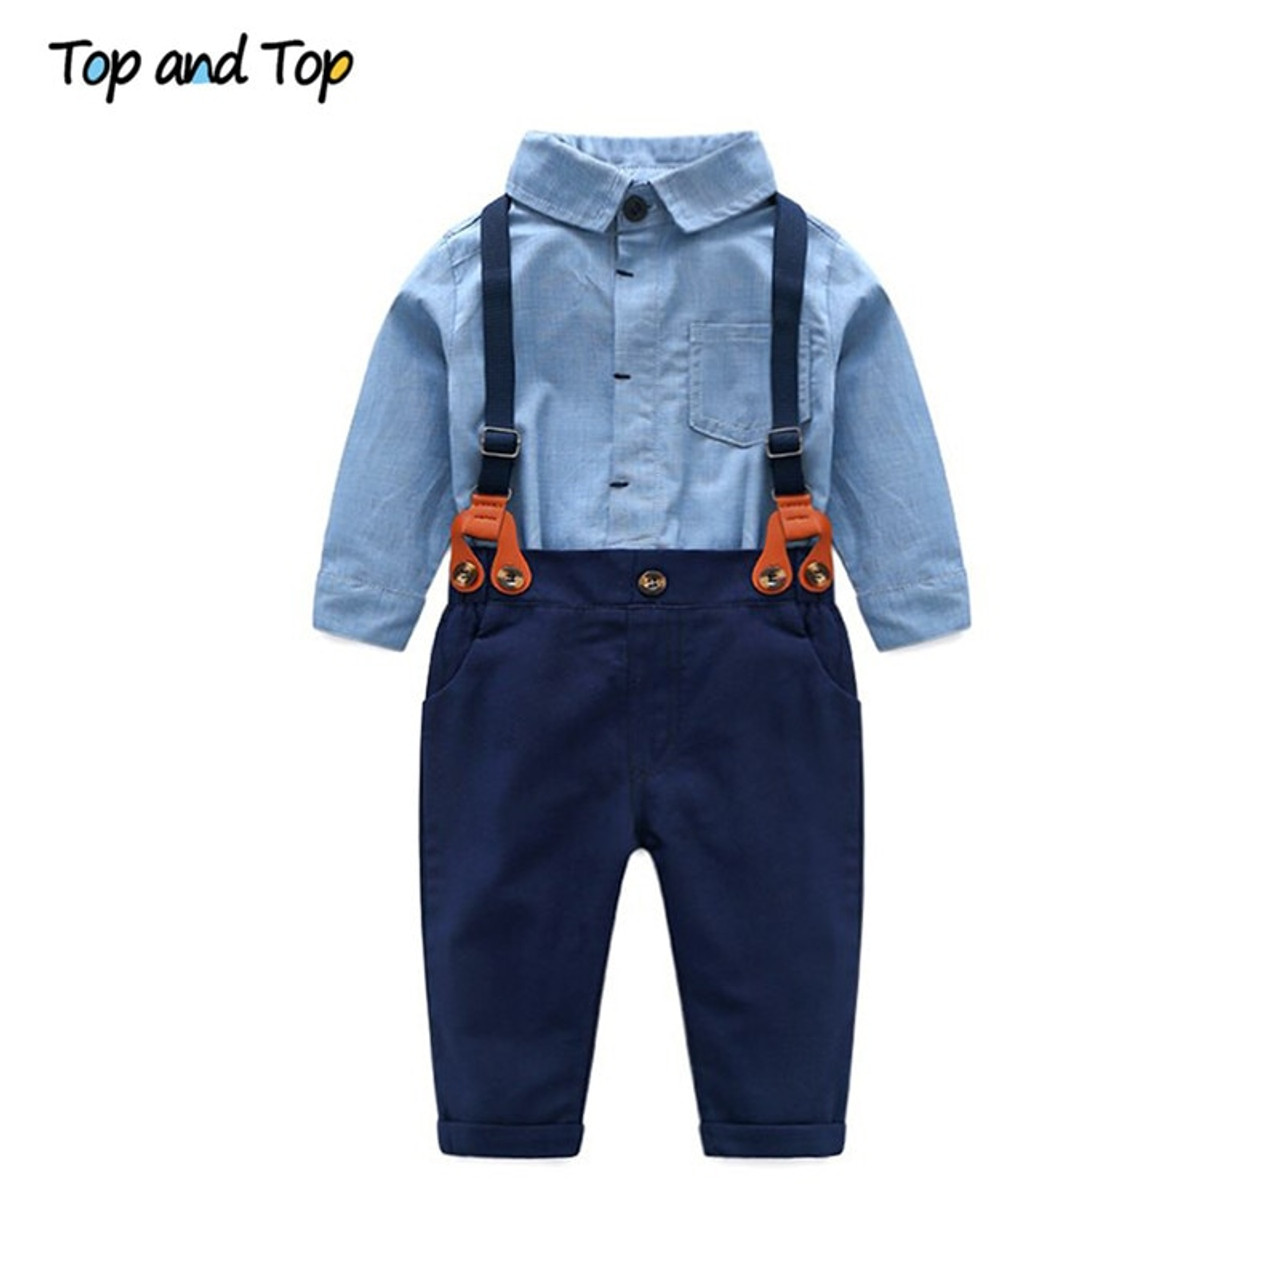 7d3bef23f3c59 Top and Top Toddler Baby Boys Gentleman Clothes Sets Long Sleeve  Romper+Suspenders Pants 2Pcs Wedding Party Casual Outfits